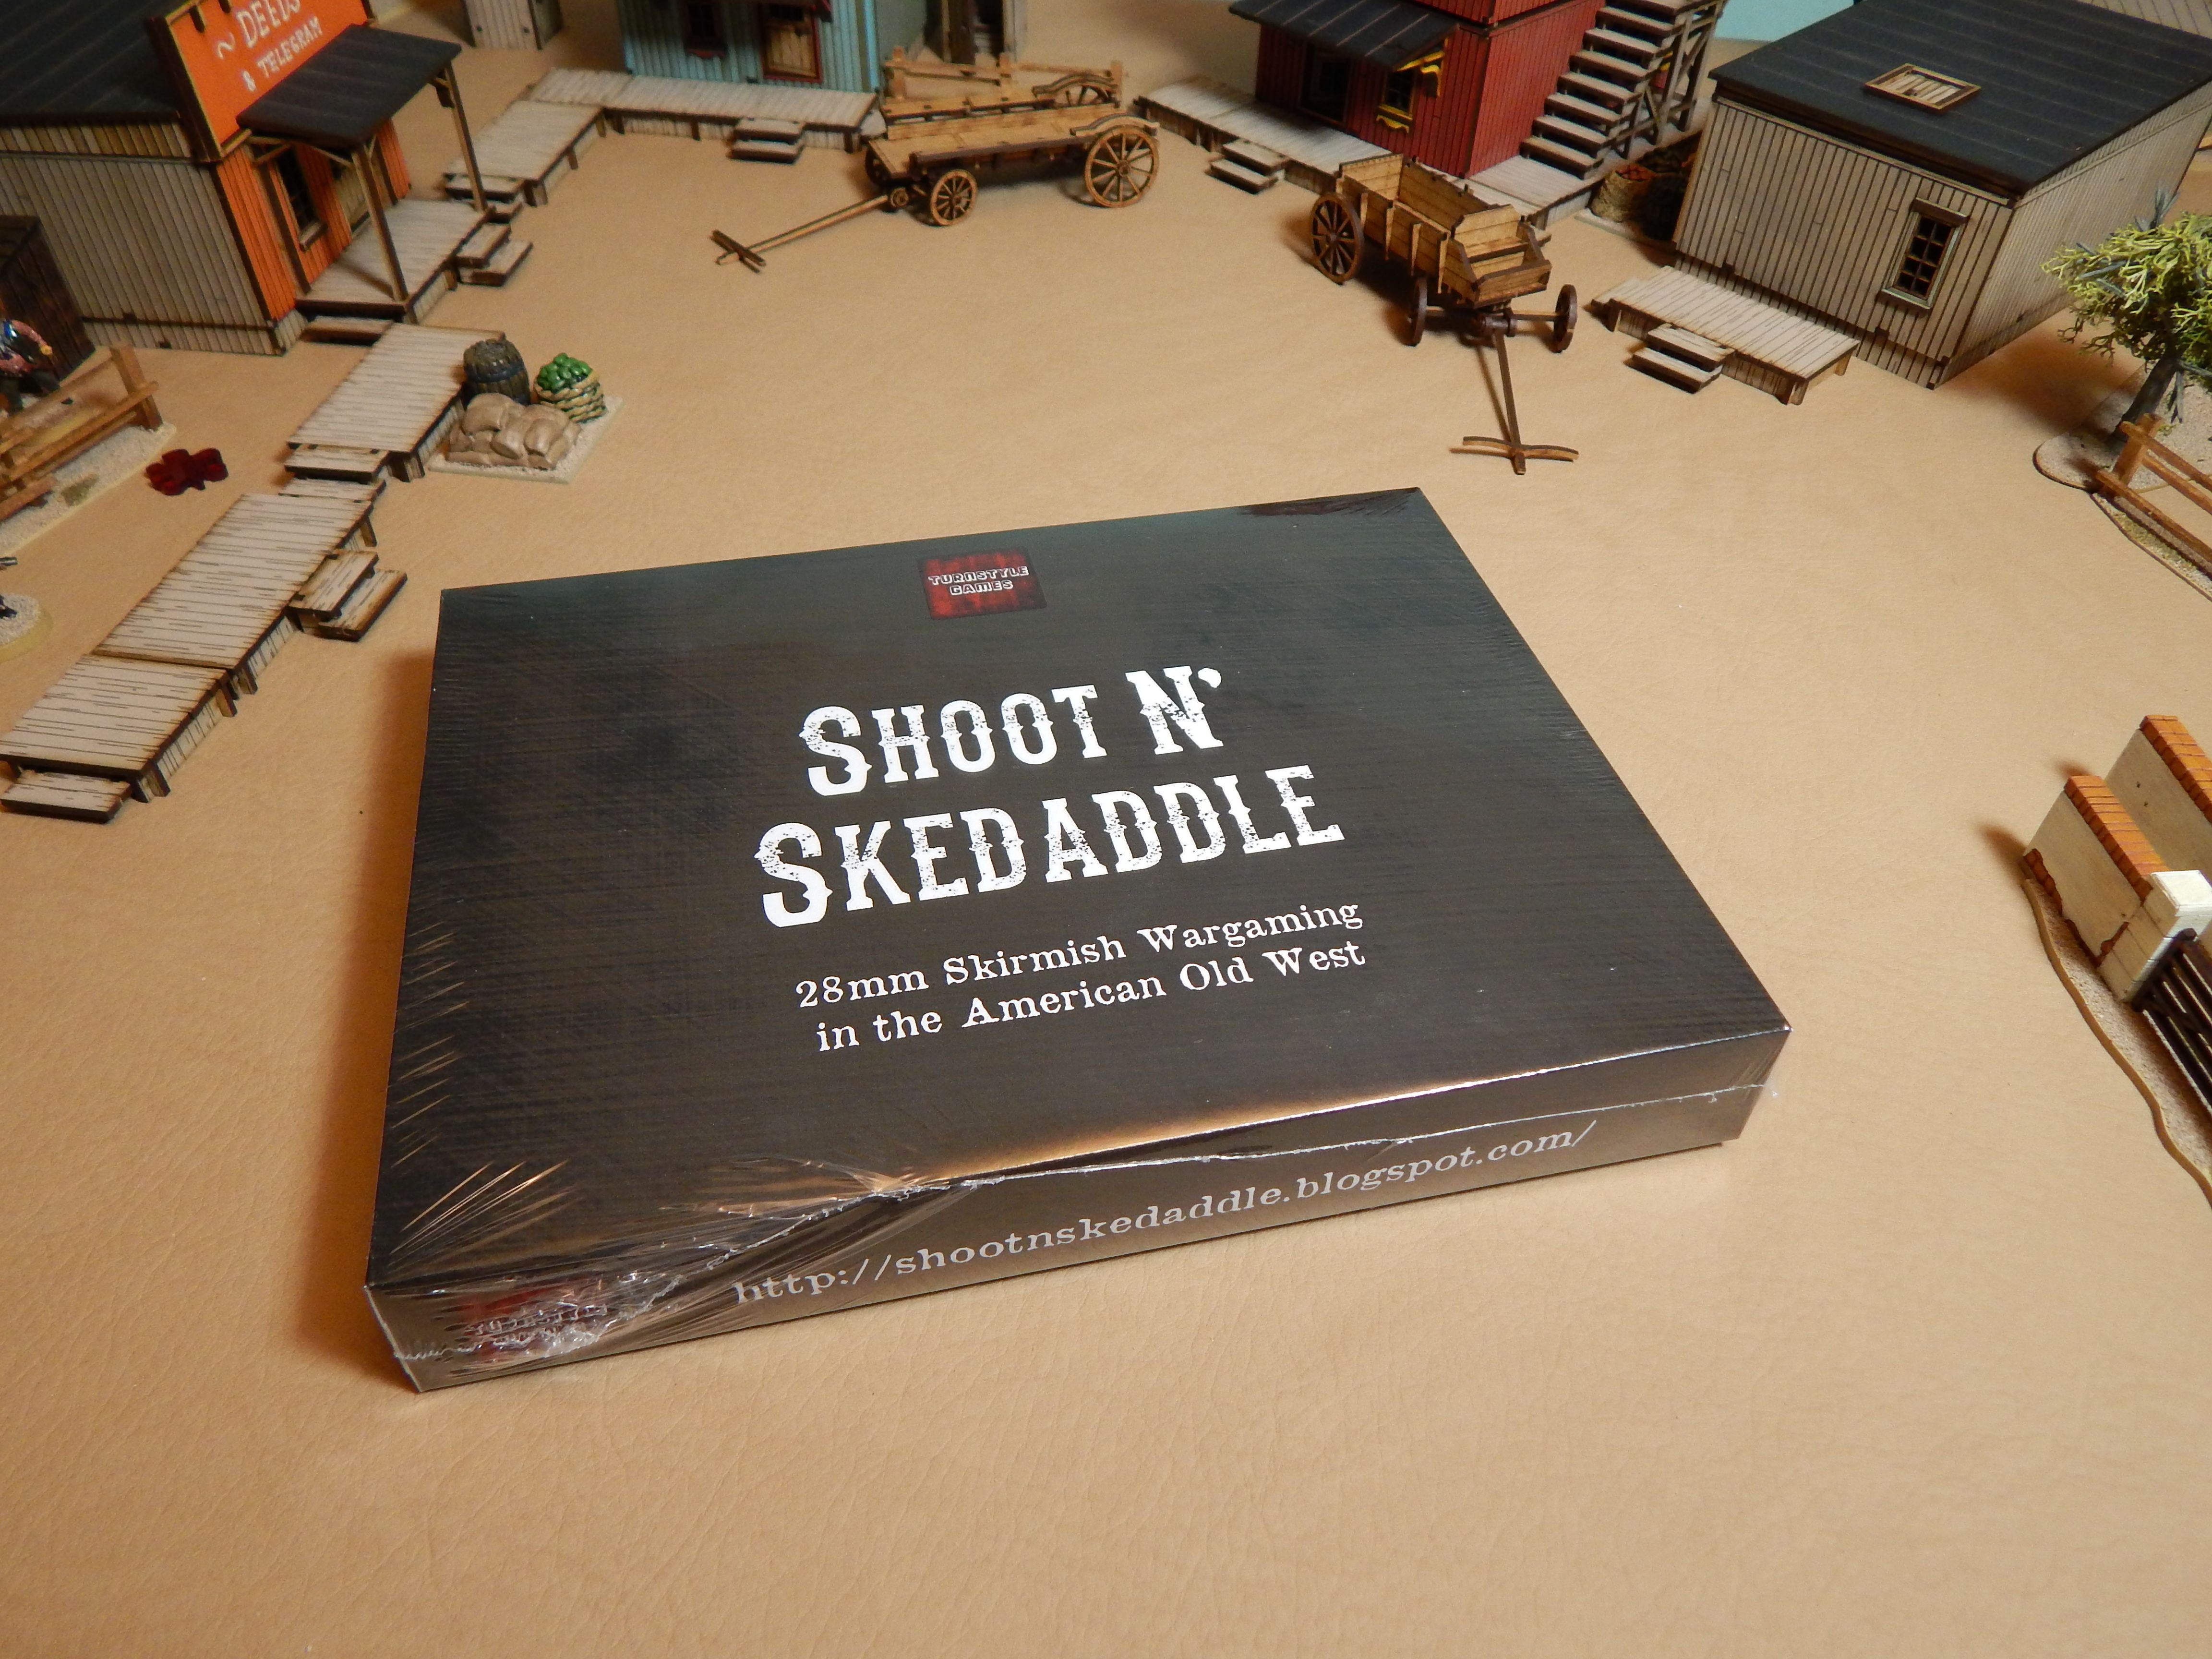 Shoot N' Skedaddle is a miniature wargaming rules set allowing